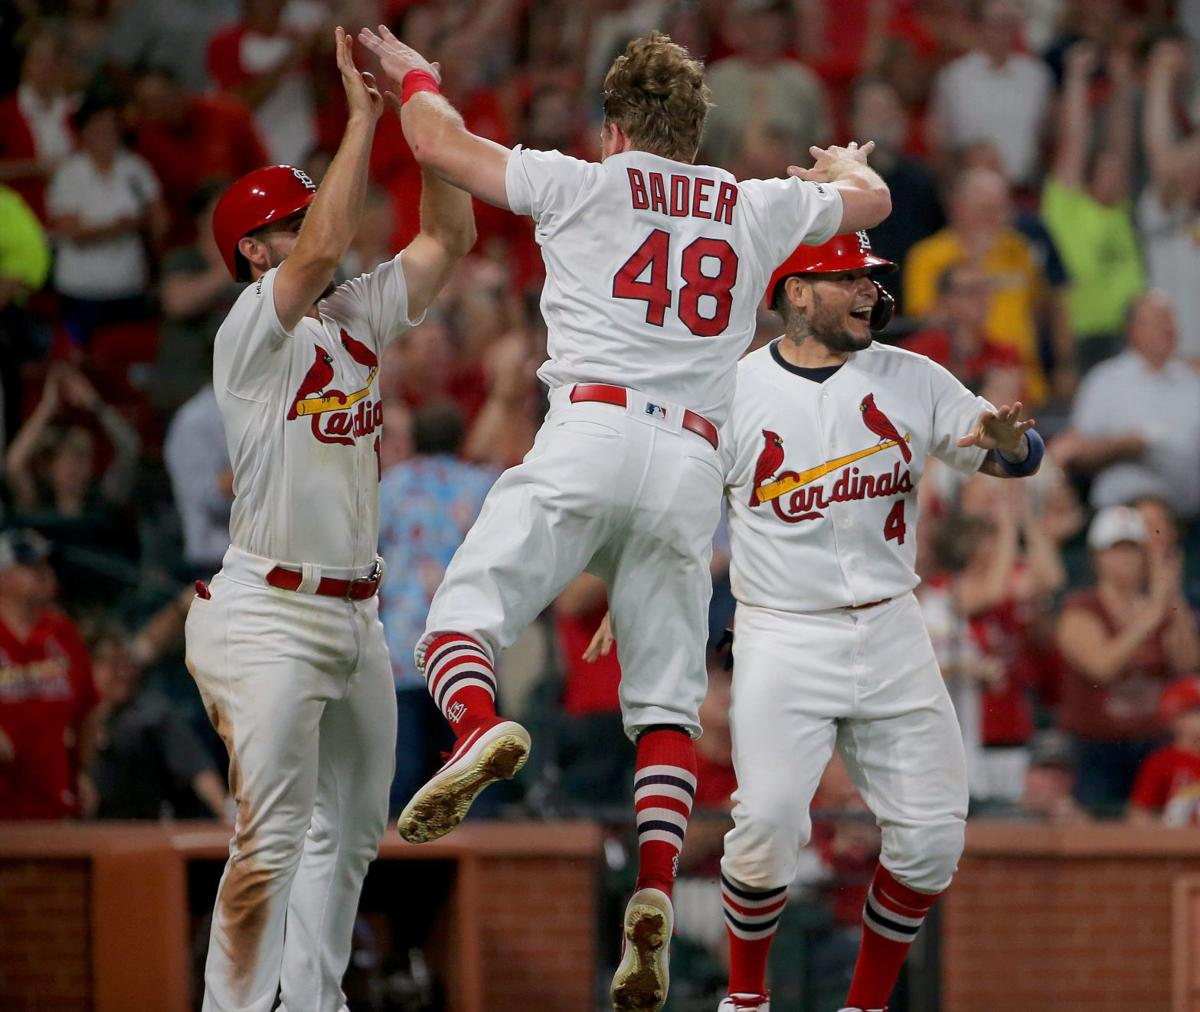 Cardinals top Brewers another time in battle of bullpens